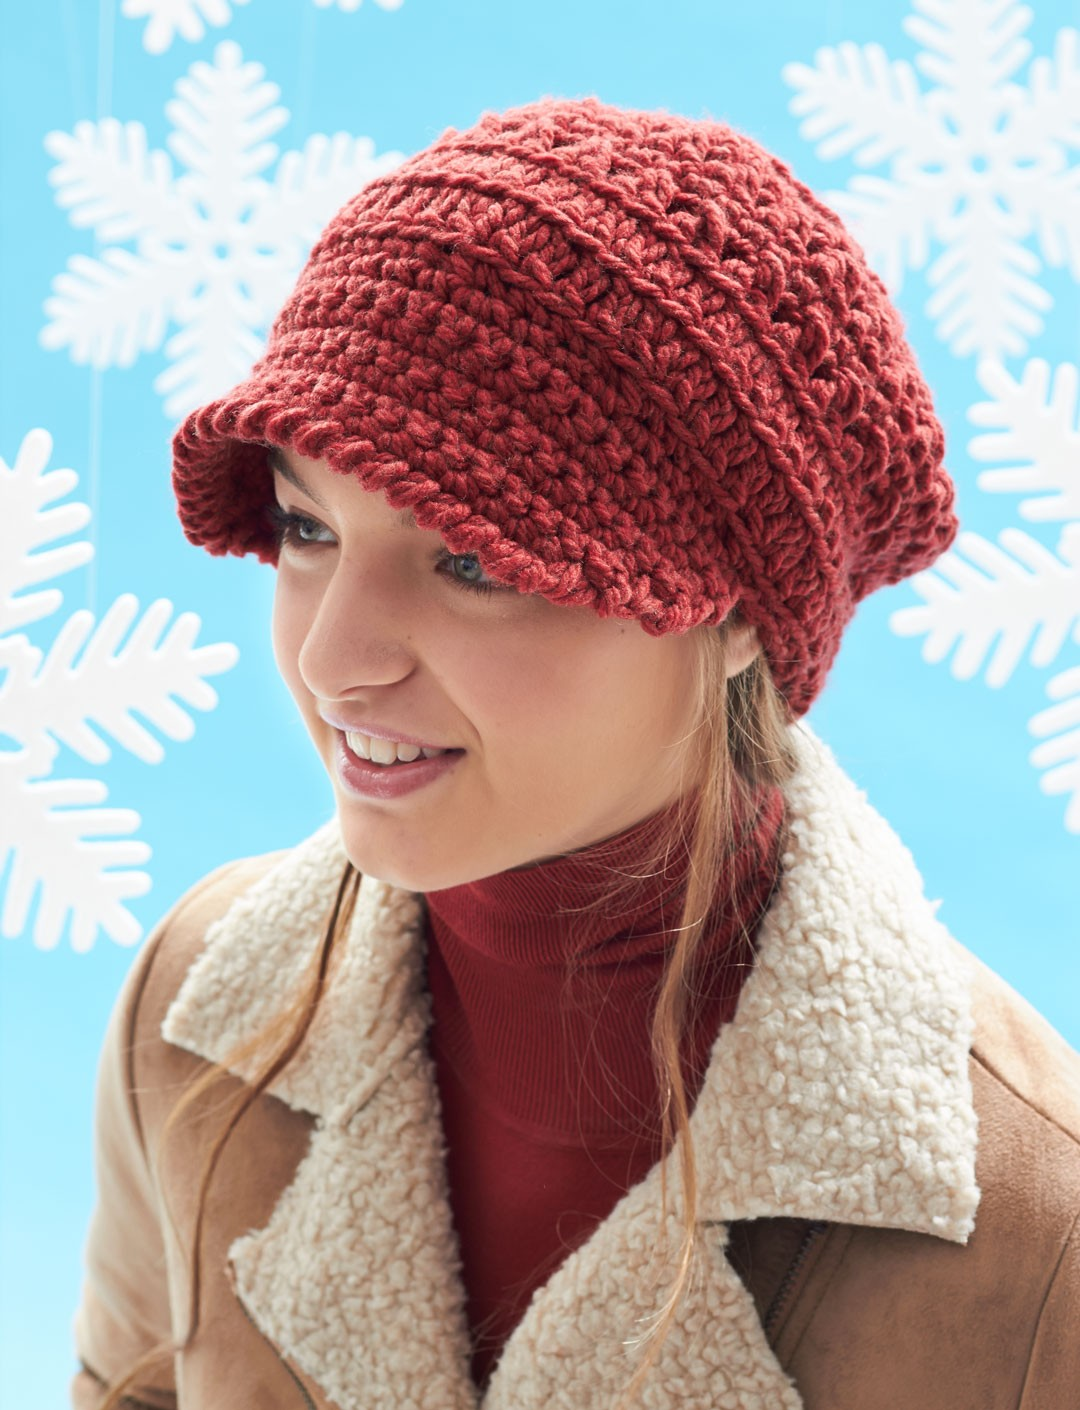 Knitting Pattern For Peaked Beanie : Yarnspirations.com - Bernat Horseshoe Cable Blanket and ...